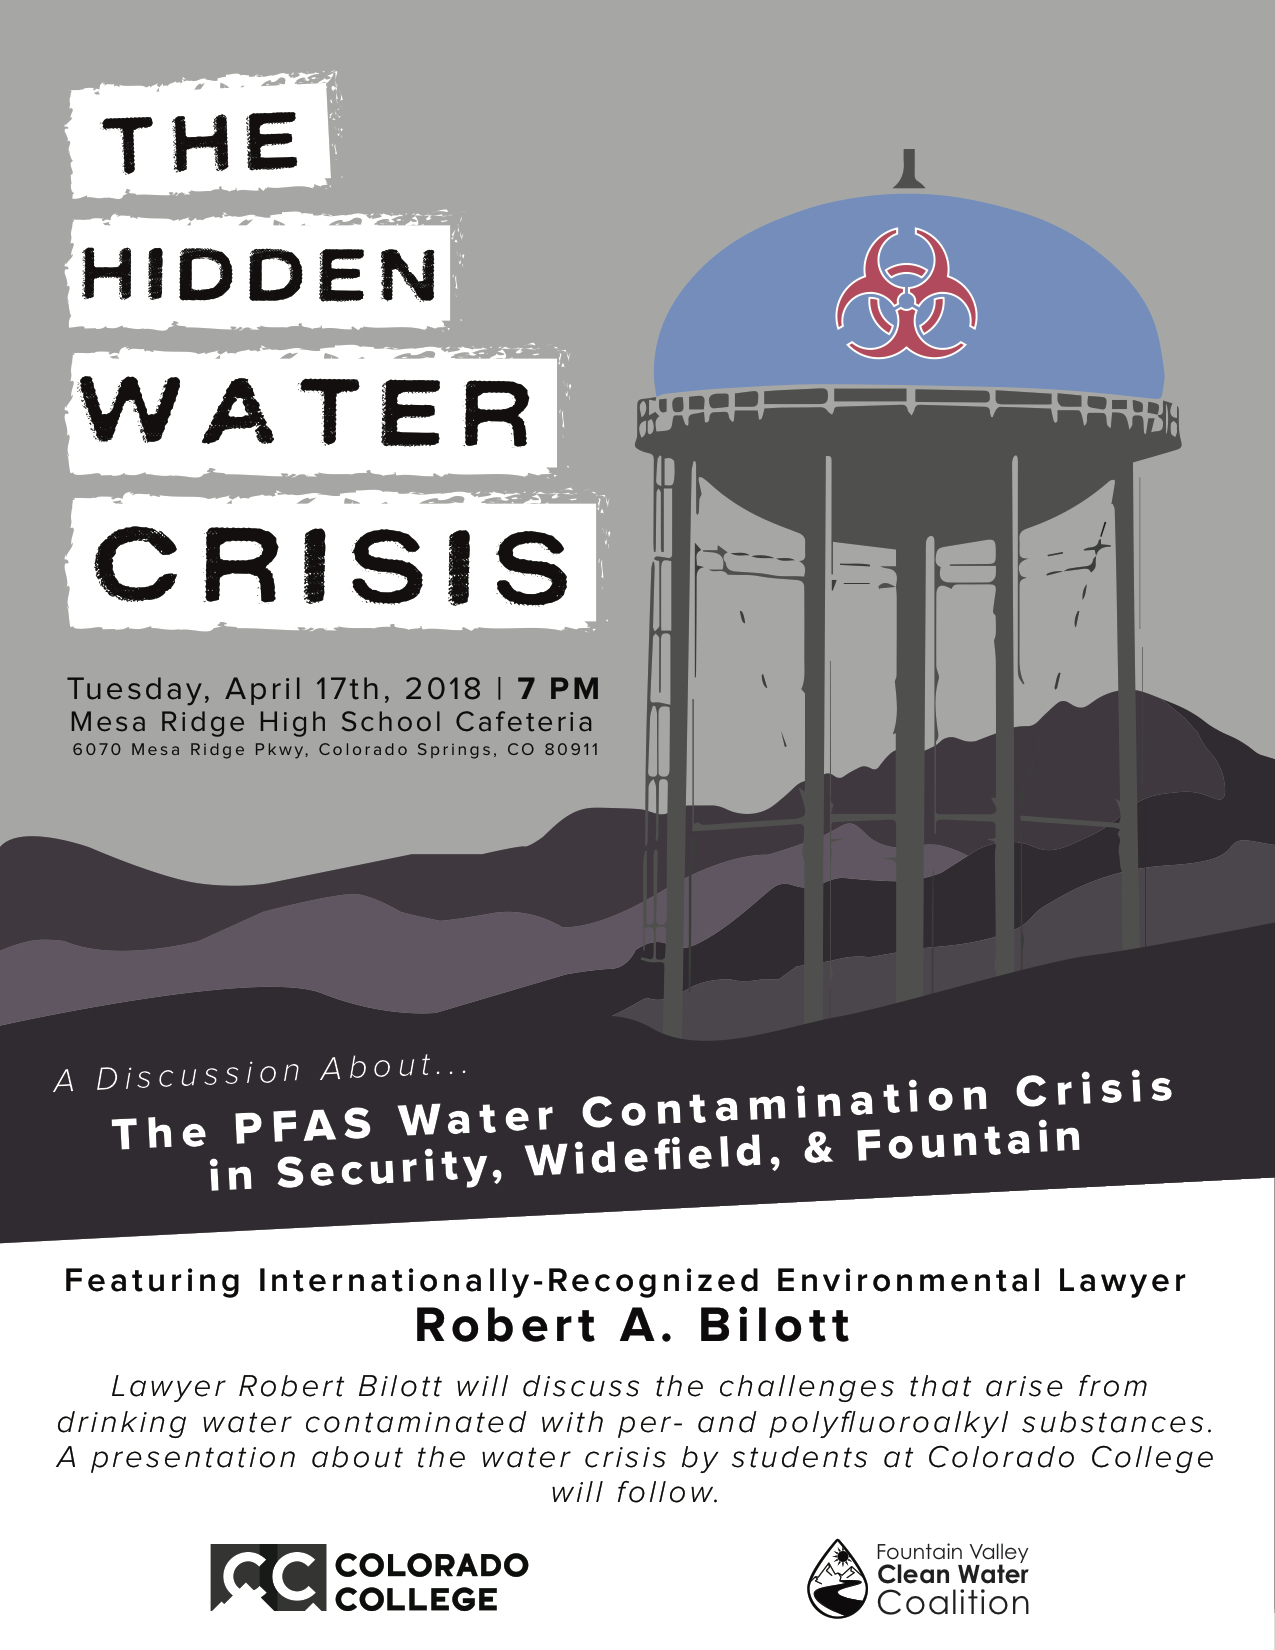 The Hidden Water Crisis in Security-Widefield and Fountain